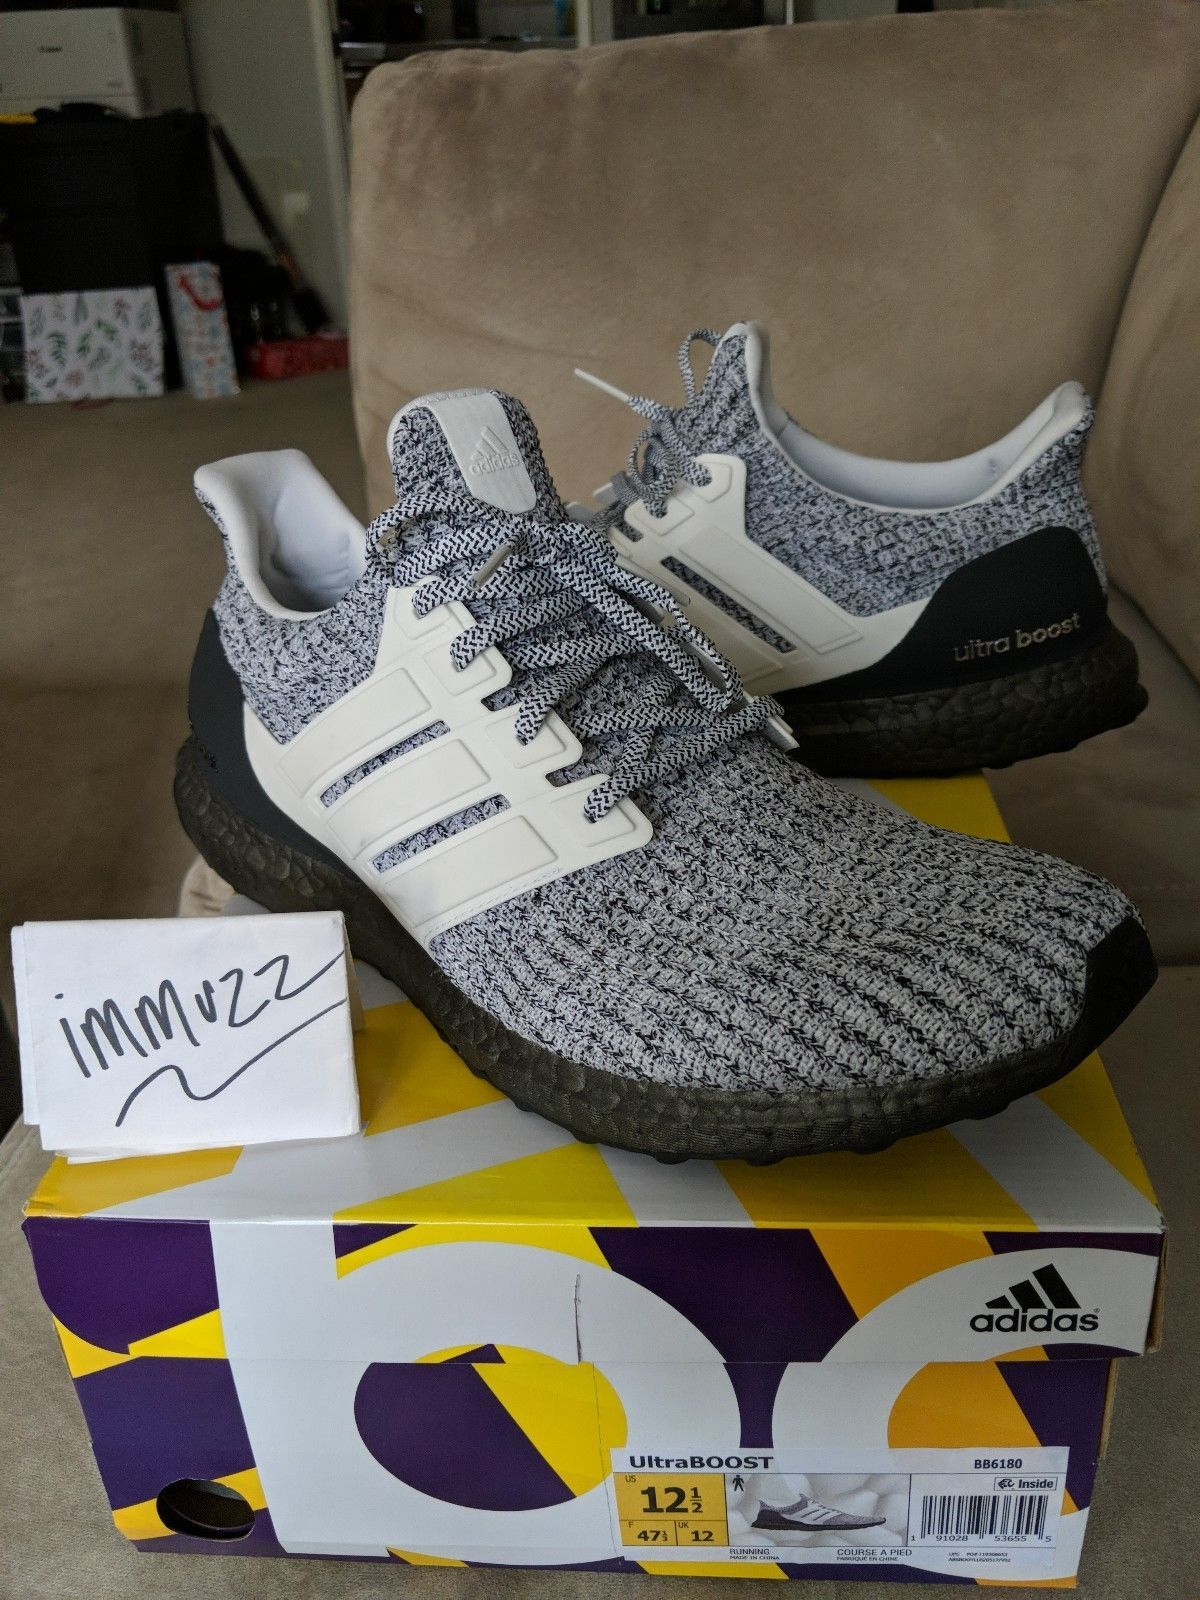 c5cf8b467436b Adidas Ultra BOOST 4.0 Oreo BB6180 Cookies and Cream LTD Men s Size 12.5